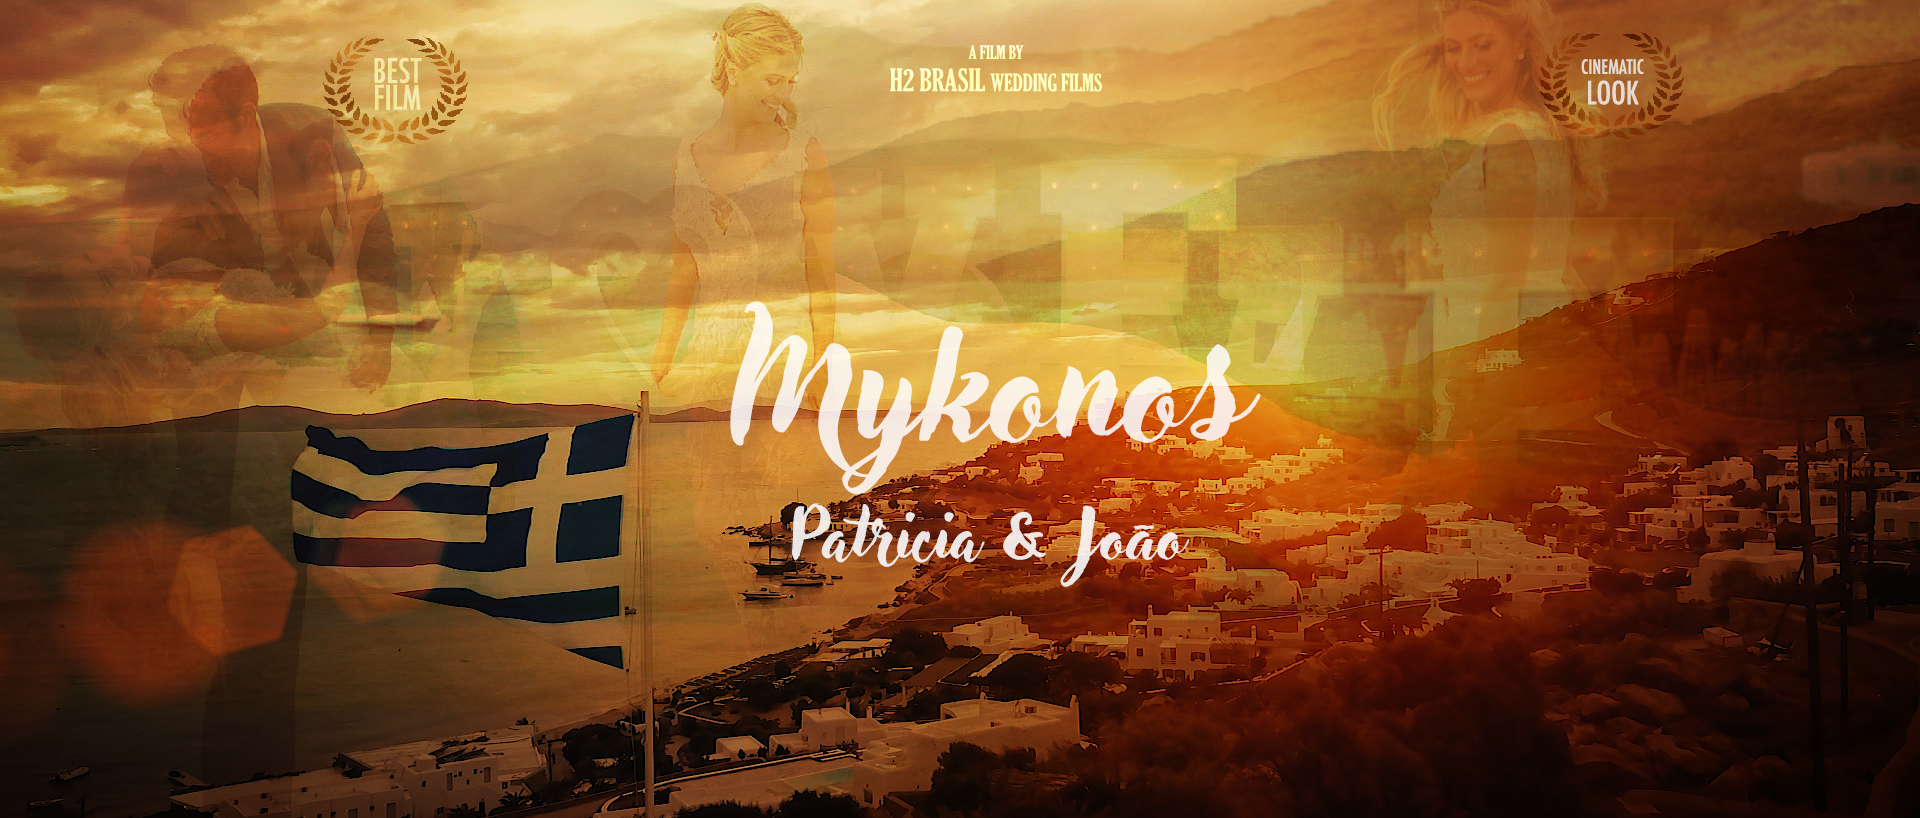 Mykonos Wedding - The Wedding Destination Film from Patricia & Joao filmed at Principote in Mykonos | Greece